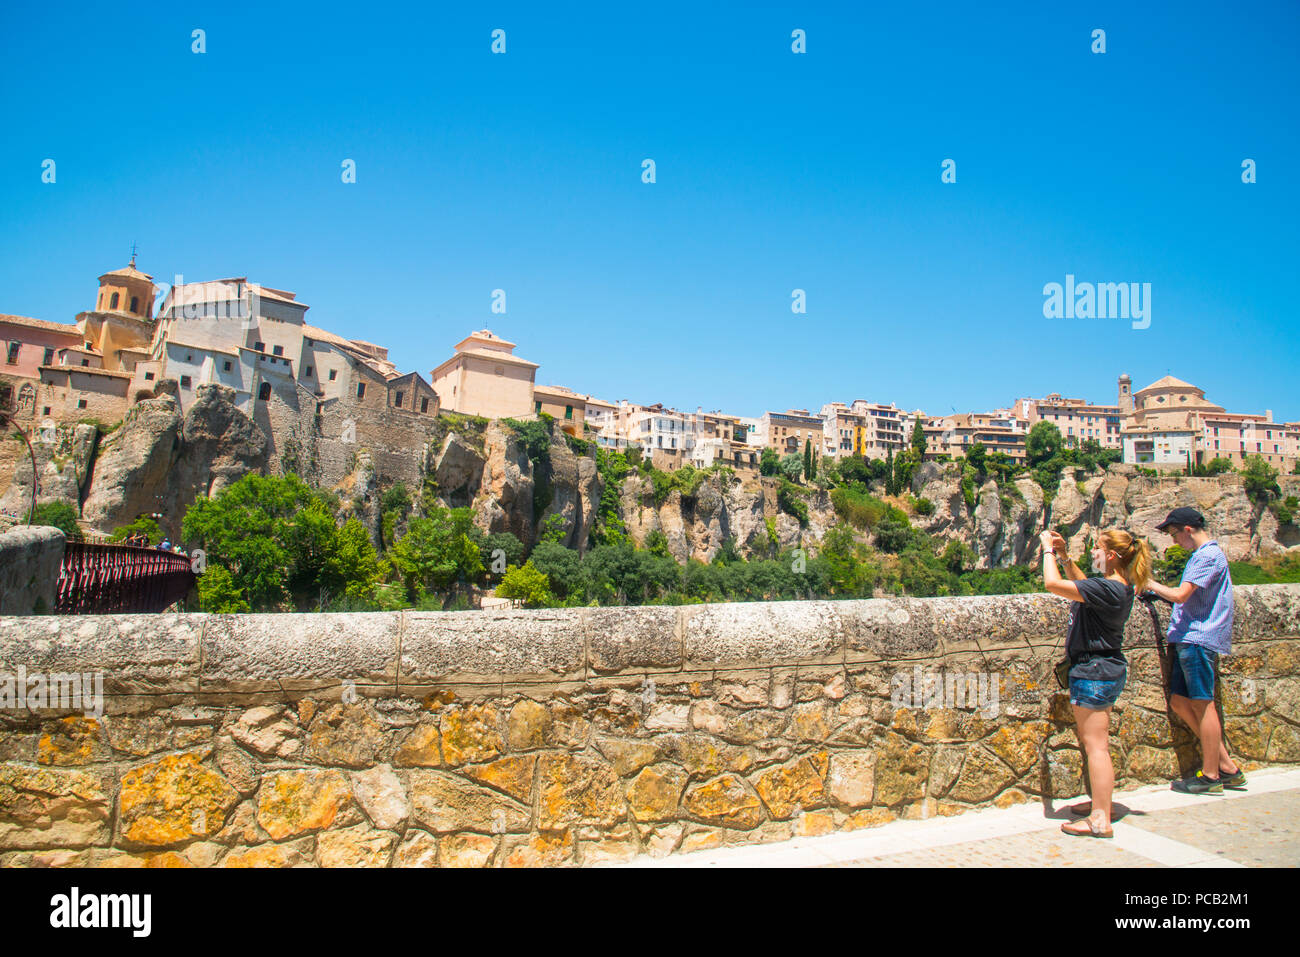 Tourists taking photos of the city. Cuenca, Spain. - Stock Image